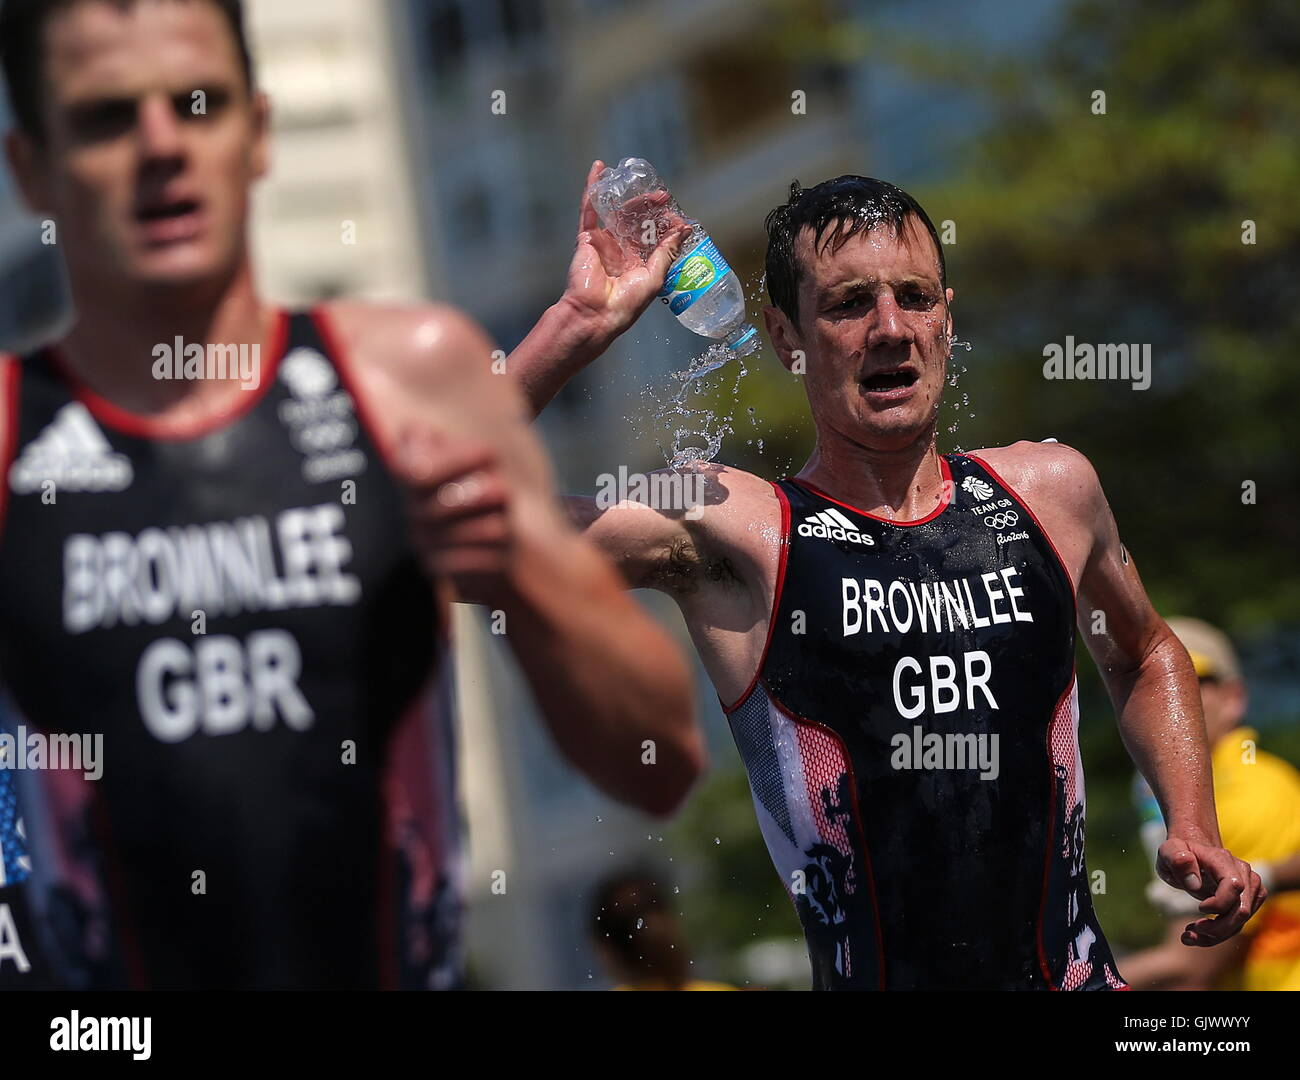 Rio De Janeiro, Brazil. 18th Aug, 2016. Jonathan Brownlee (L) and Alistair Brownlee of the United Kingdom compete - Stock Image